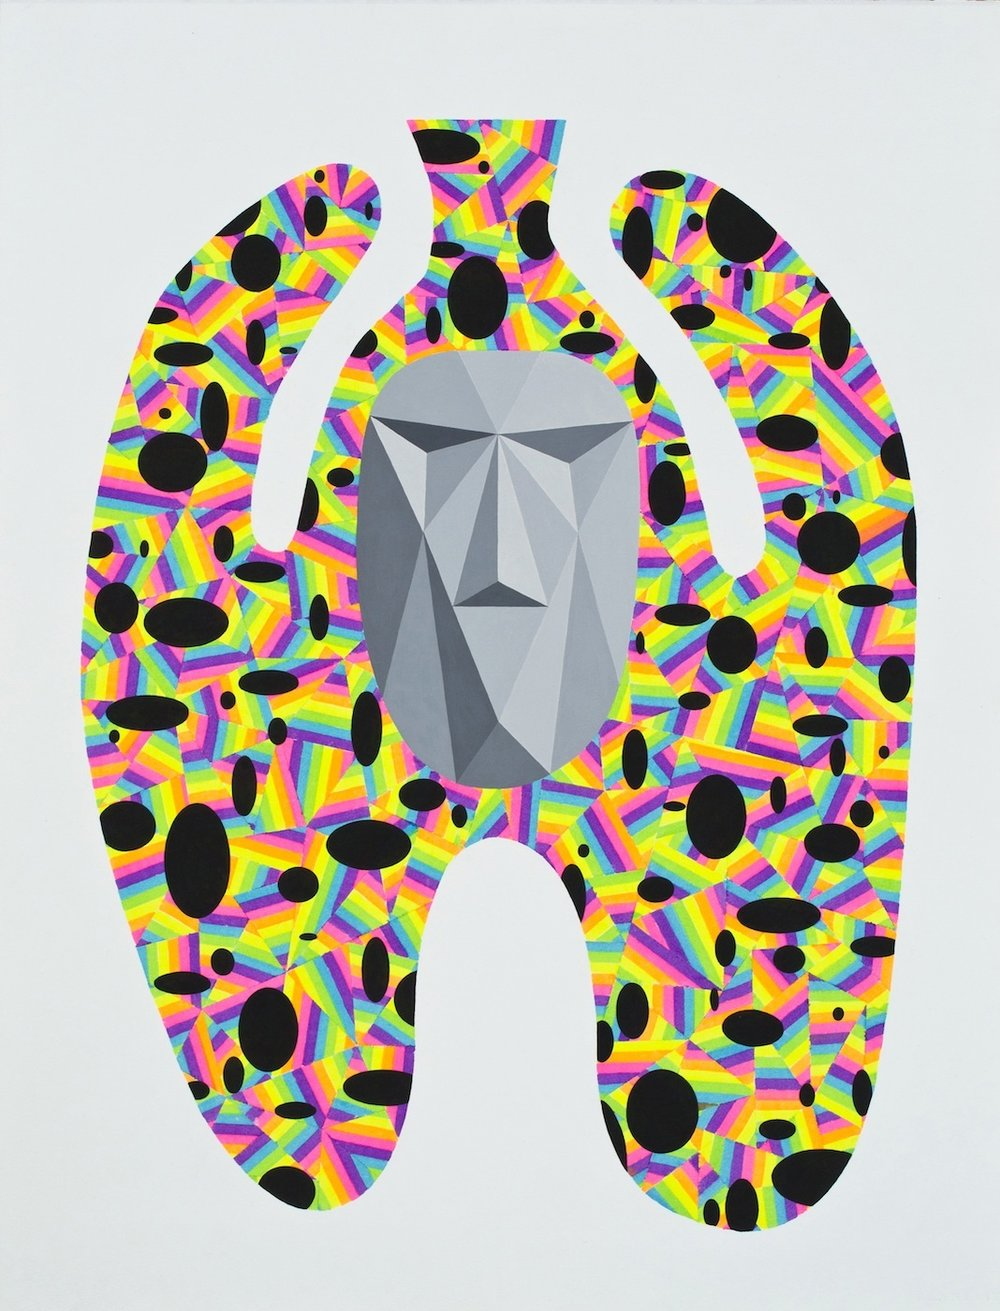 Urn 2012 Acrylics and marker on paper 56.5 x 43.3 cm